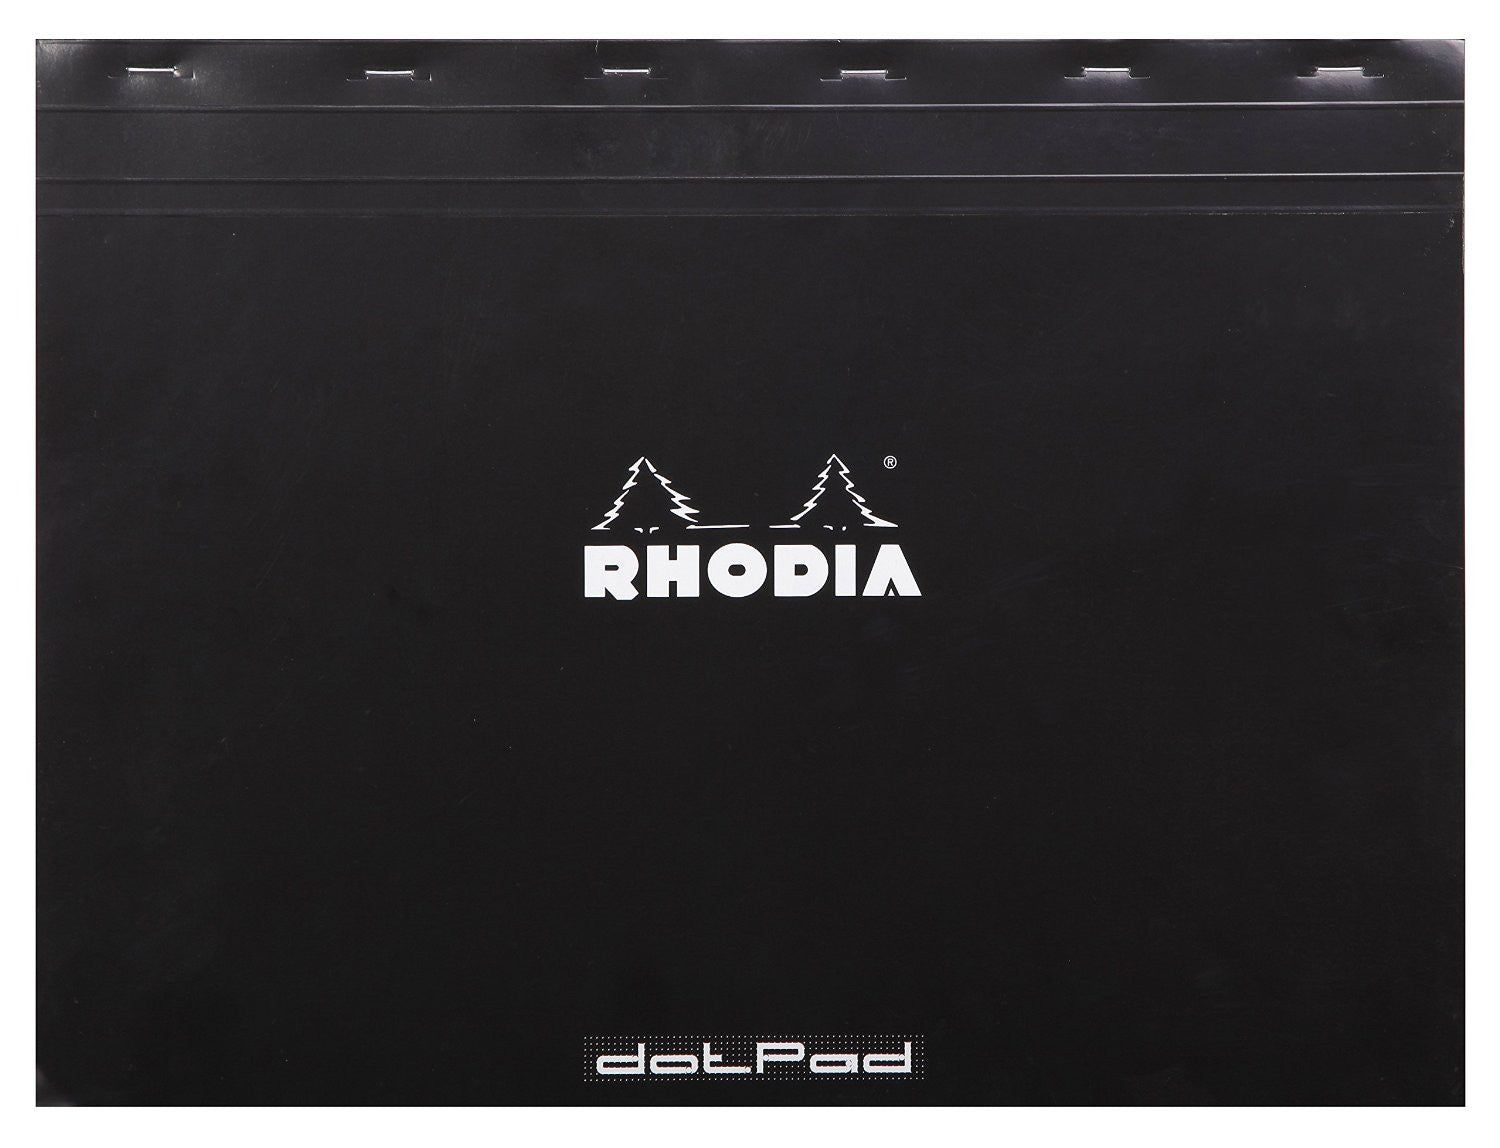 Rhodia Black Dot Pad 16.5x12.5""